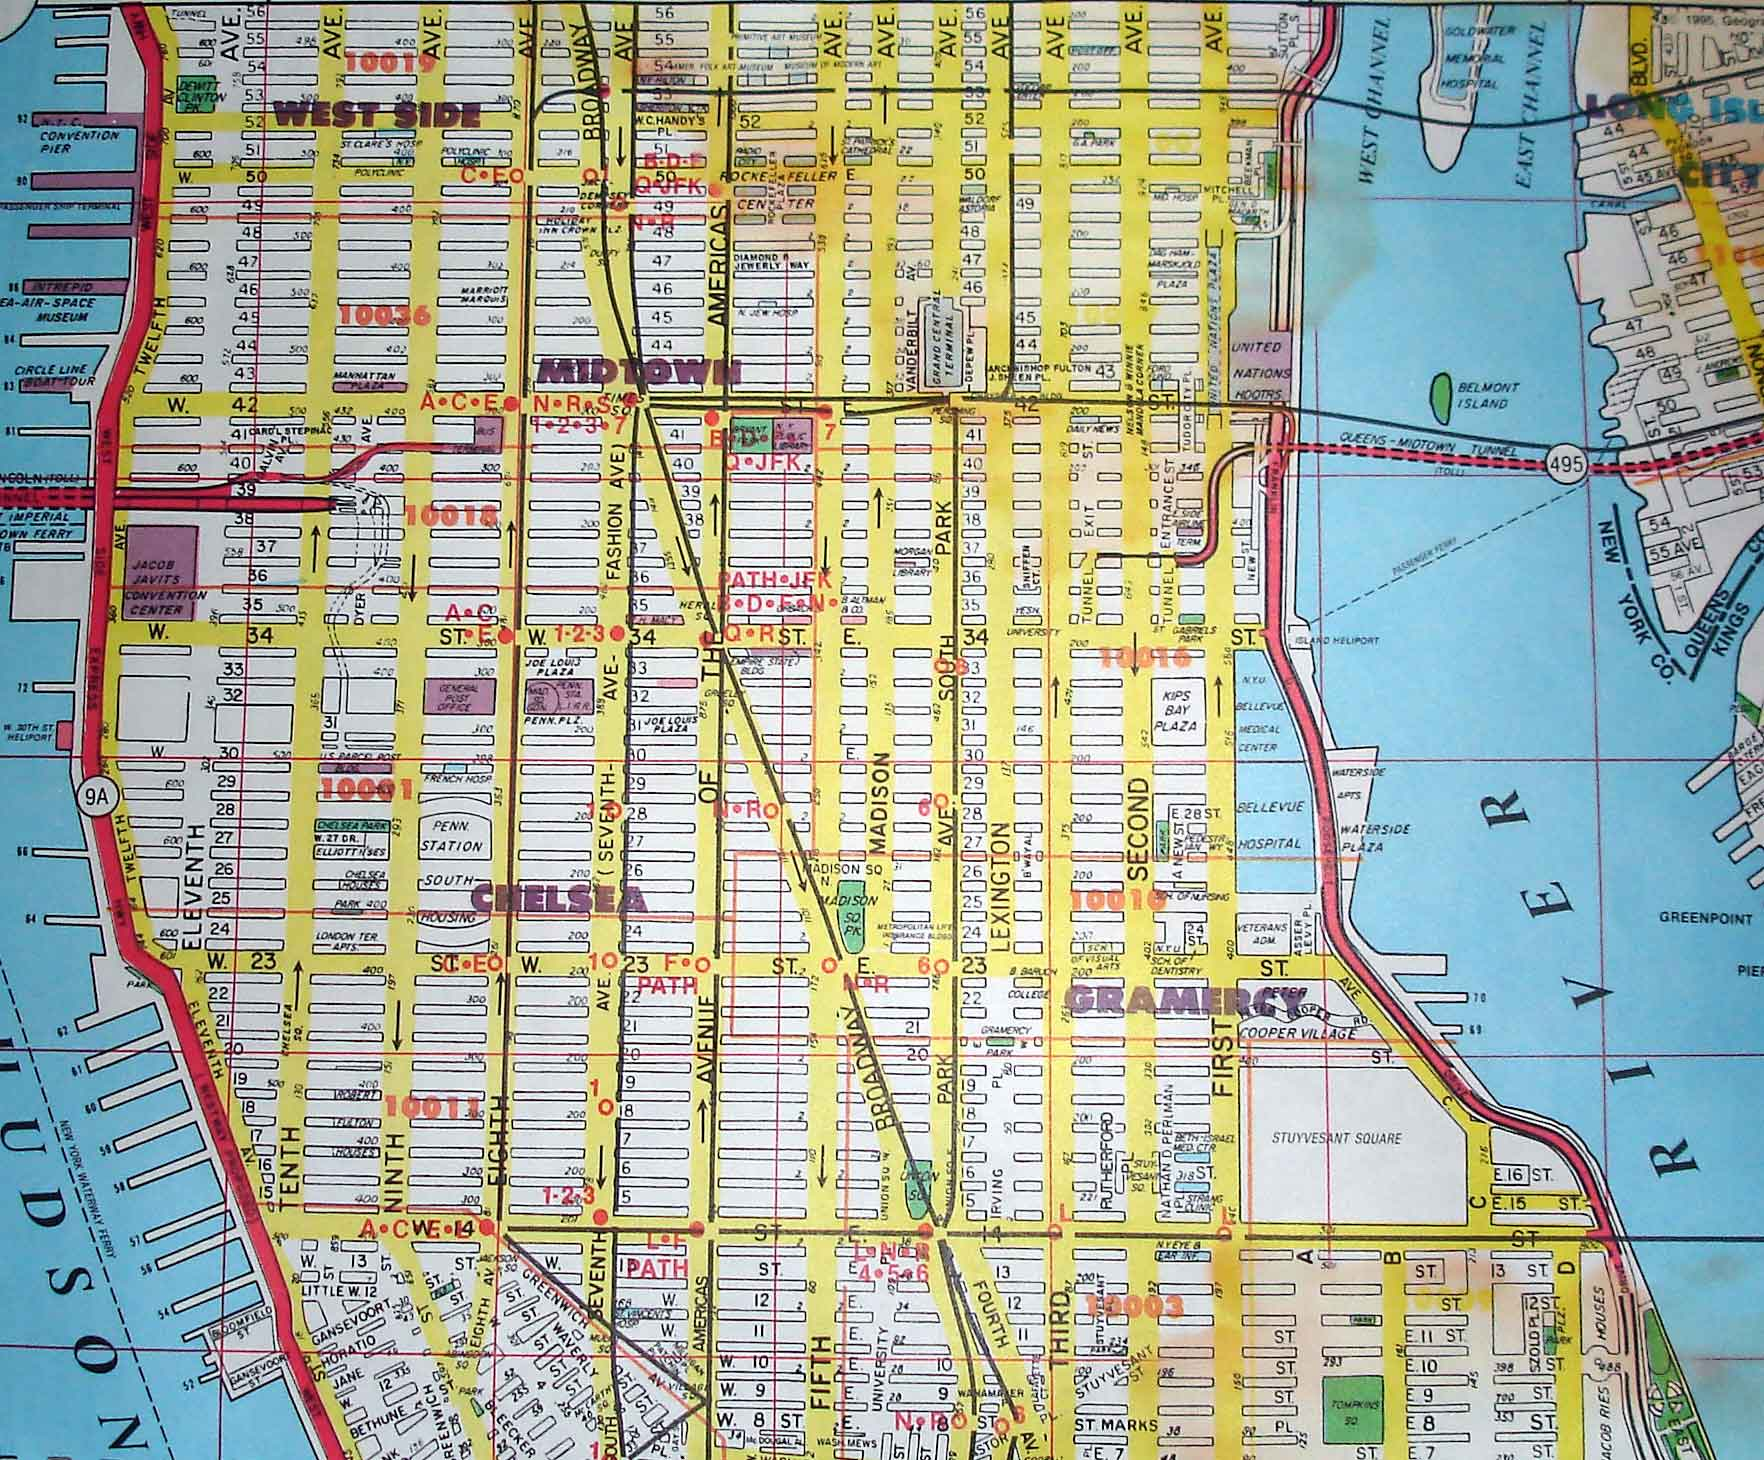 Hotels New York City Map on california hotel map, madison square garden new york map, midtown new york map, rochester hotel map, new york subway map, geneva hotel map, paris hotel map, davenport hotel map, maine hotel map, wichita hotel map, snowmass hotel map, eugene hotel map, mumbai hotel map, london hotel map, times square hotels map, lafayette new york map, philadelphia downtown hotel map, greenville hotel map, marlton hotel map, arlington hotel map,